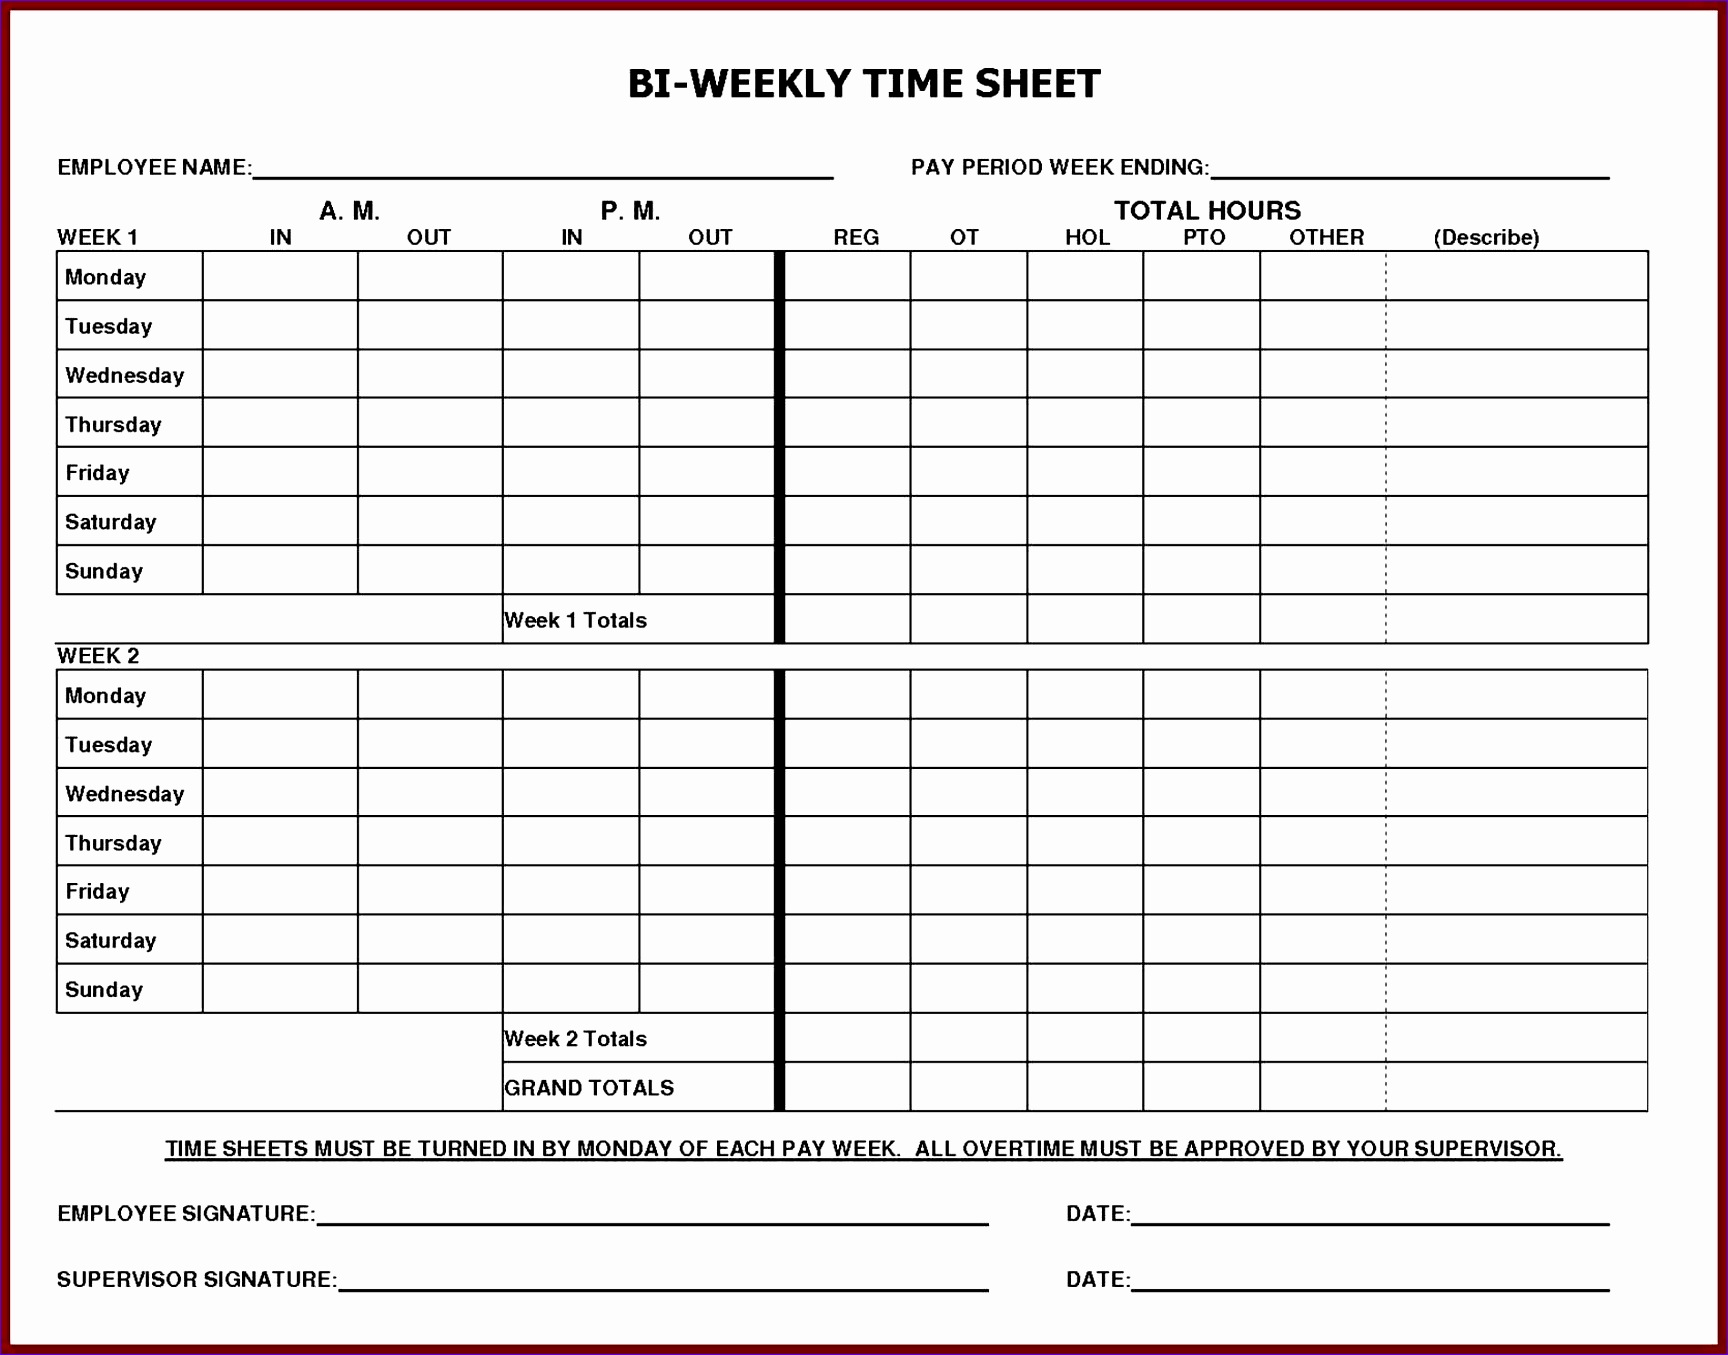 job Weekly Employee Time Sheet timesheet template sendlettersinfo free printable time sheets project daily payroll u weekly free Weekly Employee Time